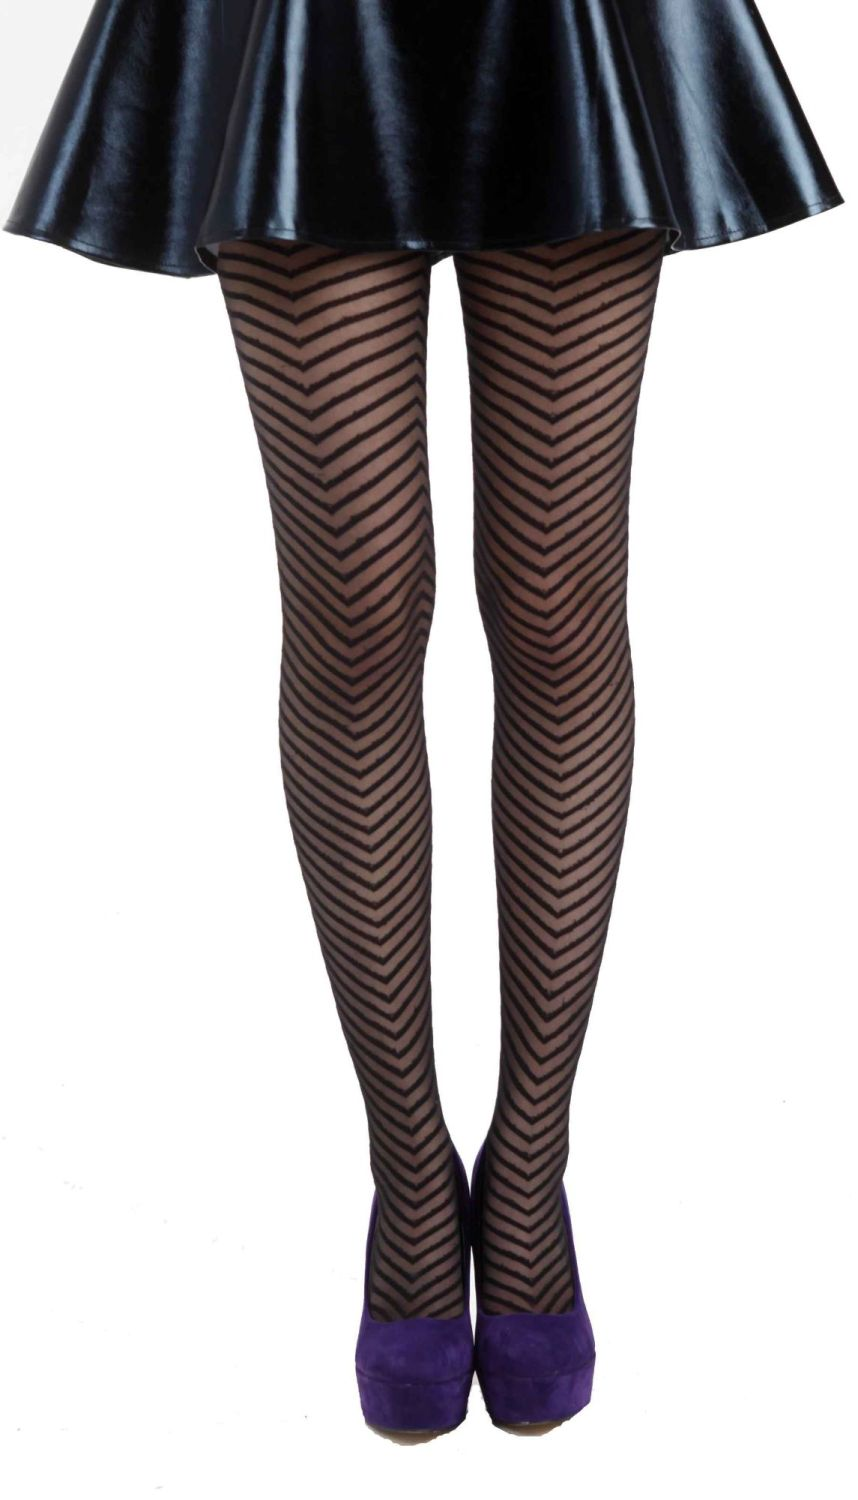 Pamela Mann Fishbone Sheer Tights Black size 28-32